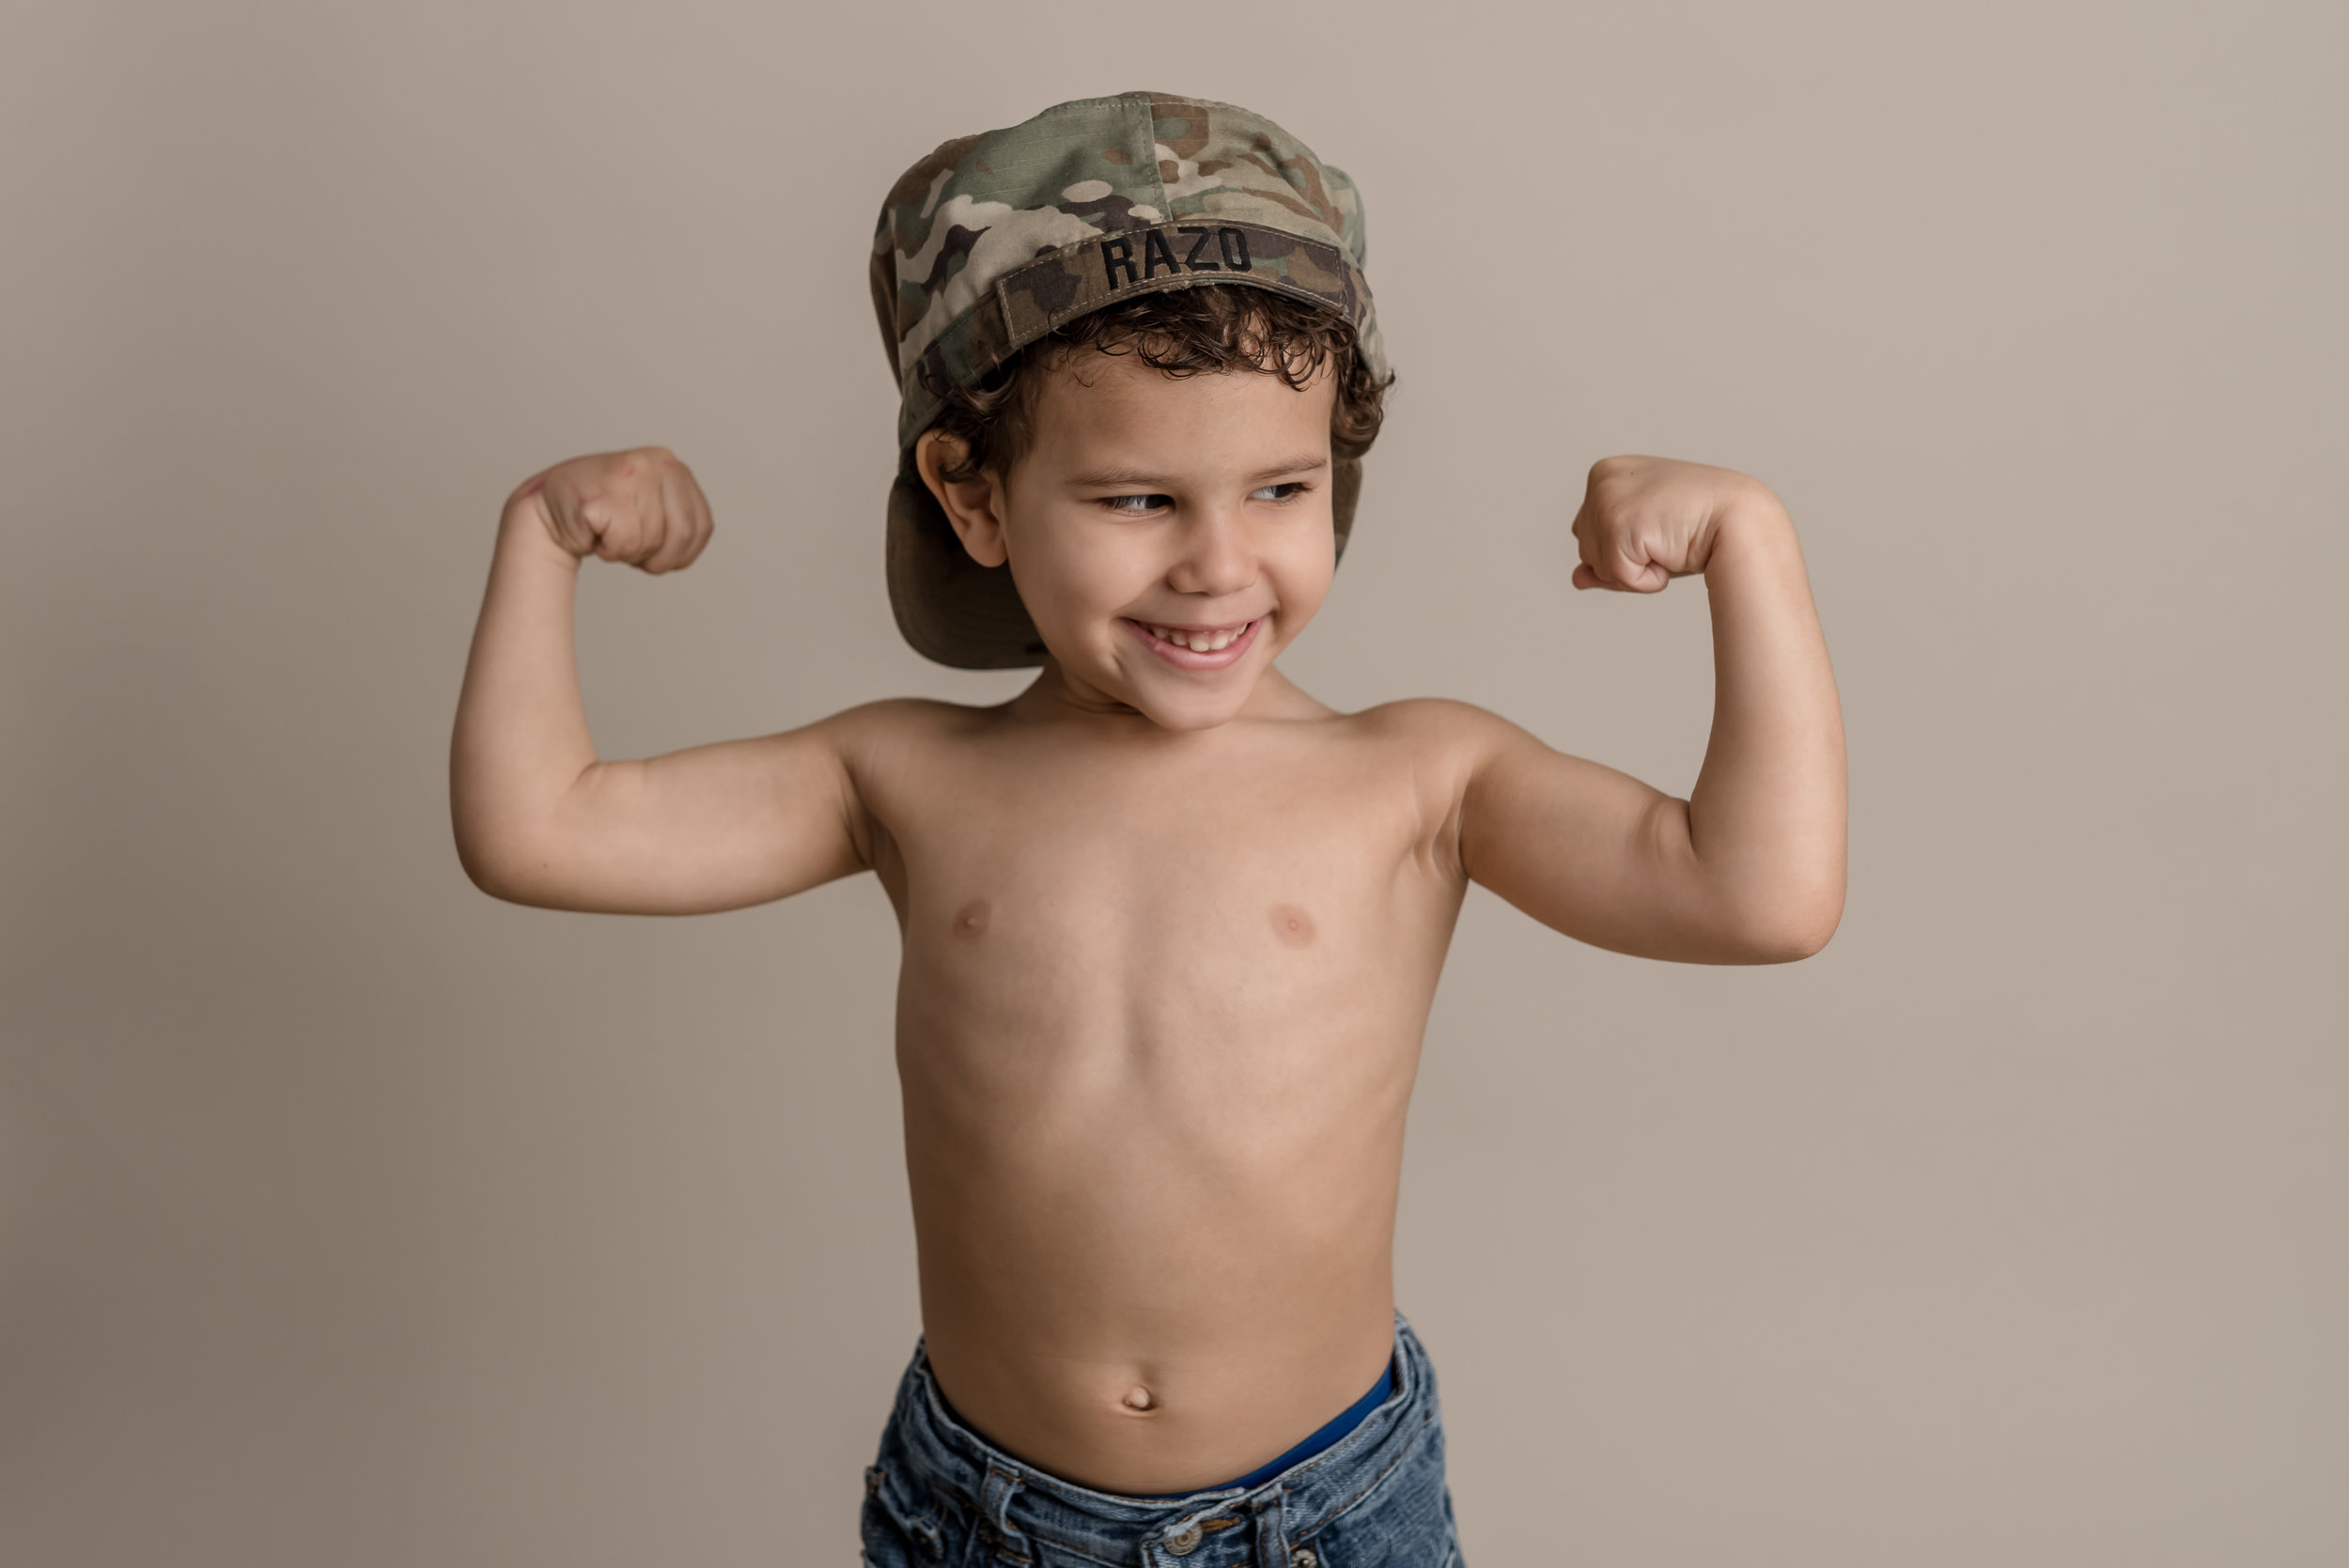 little boy showing off his muscles in his dad's army hat with junebug photography studio in manhattan, ks